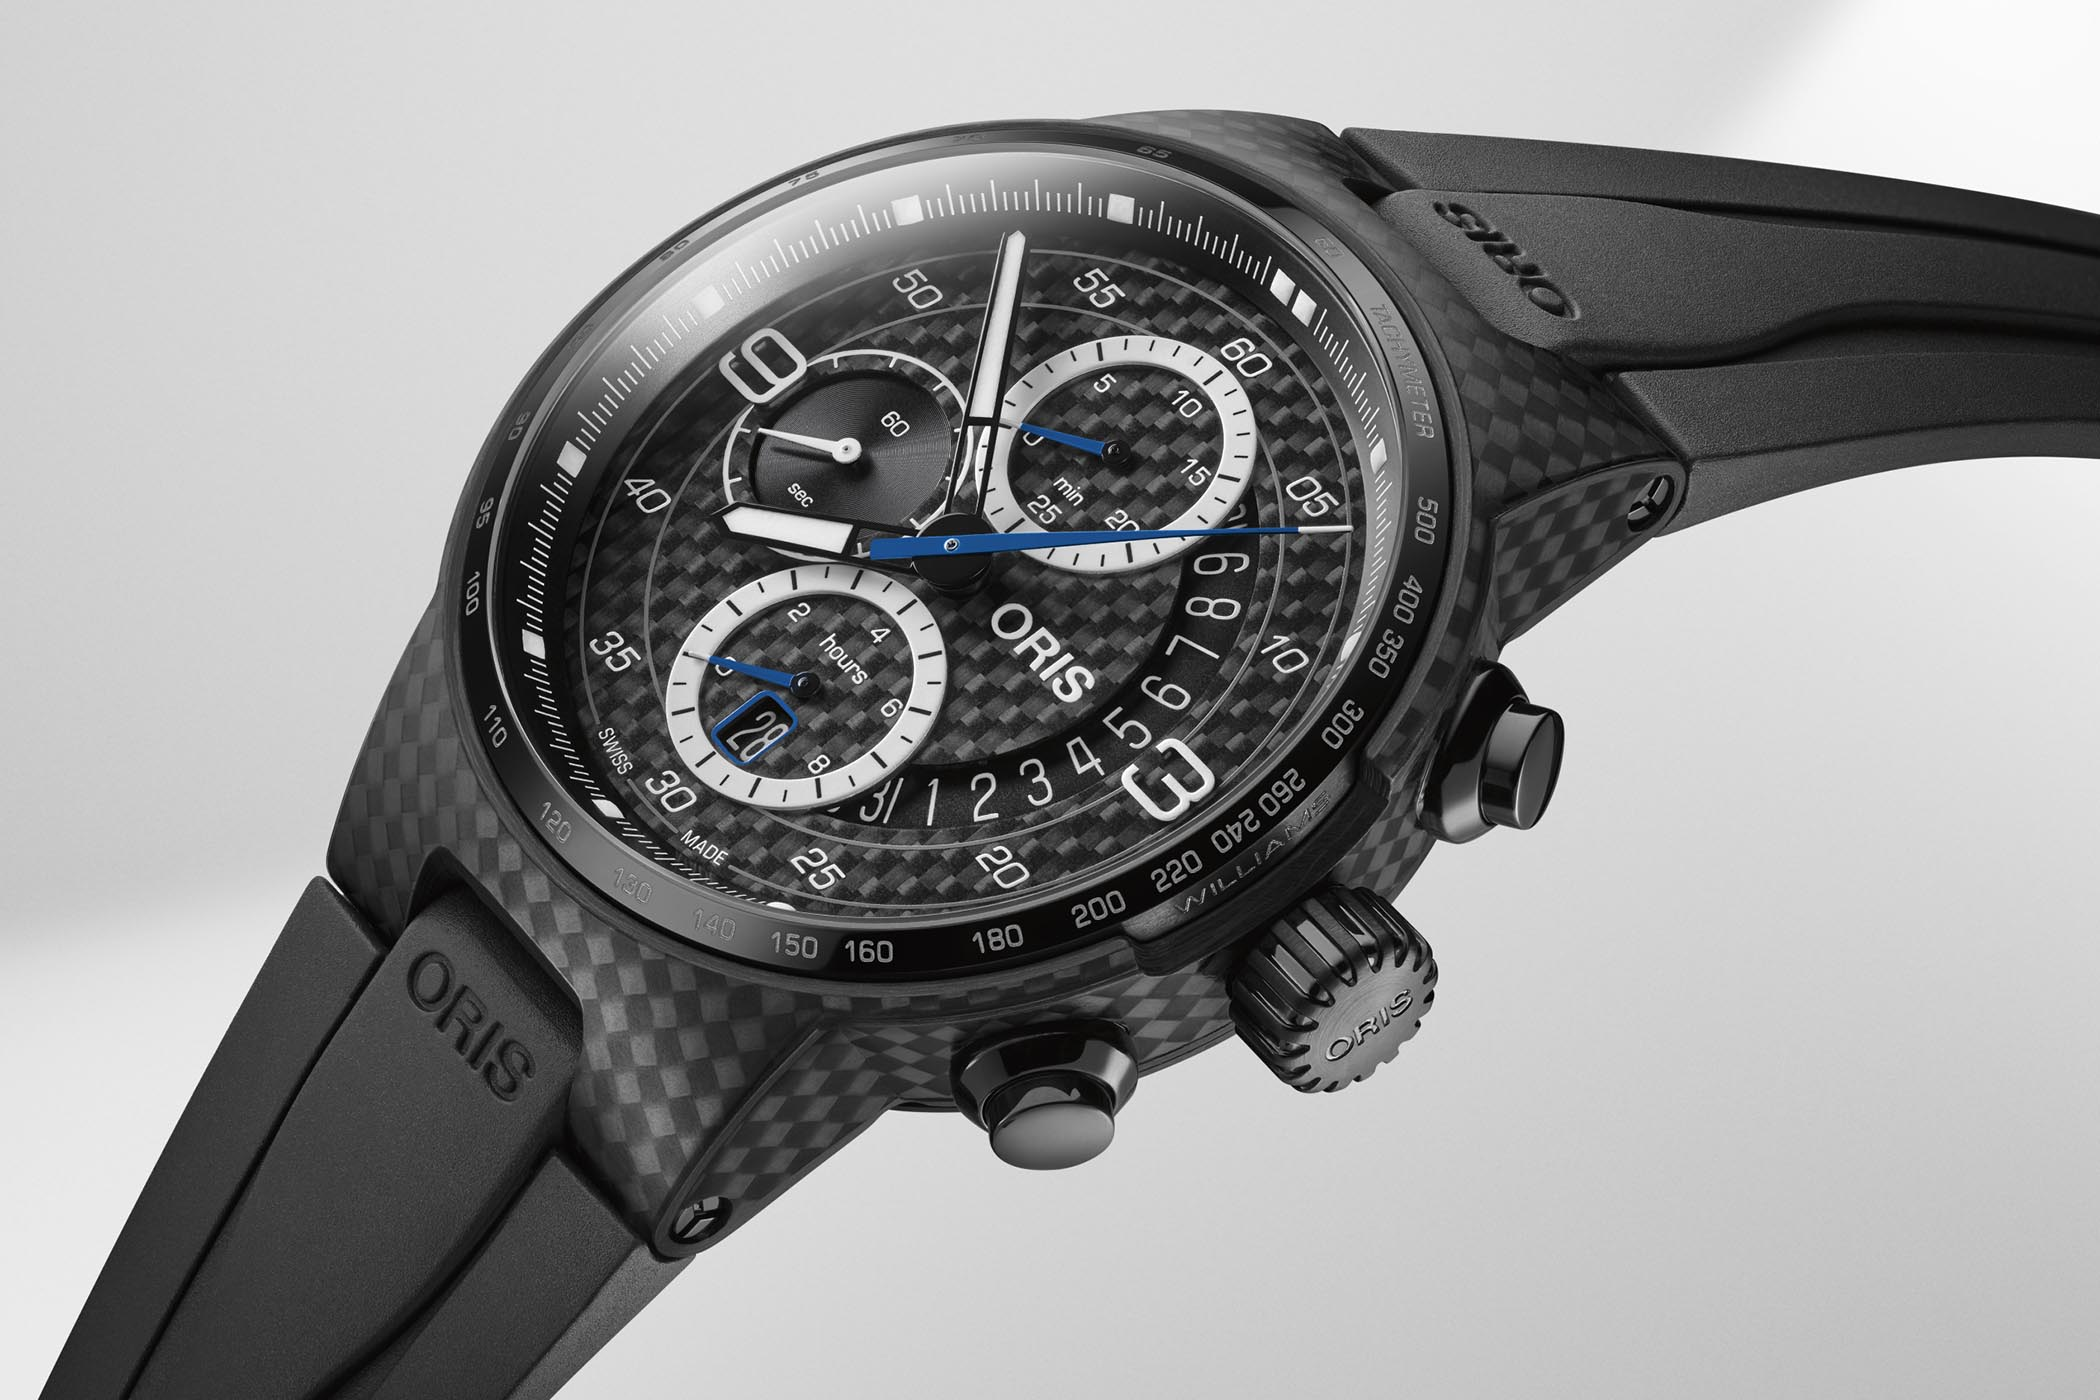 Oris Williams FW41 Limited Edition Full Carbon